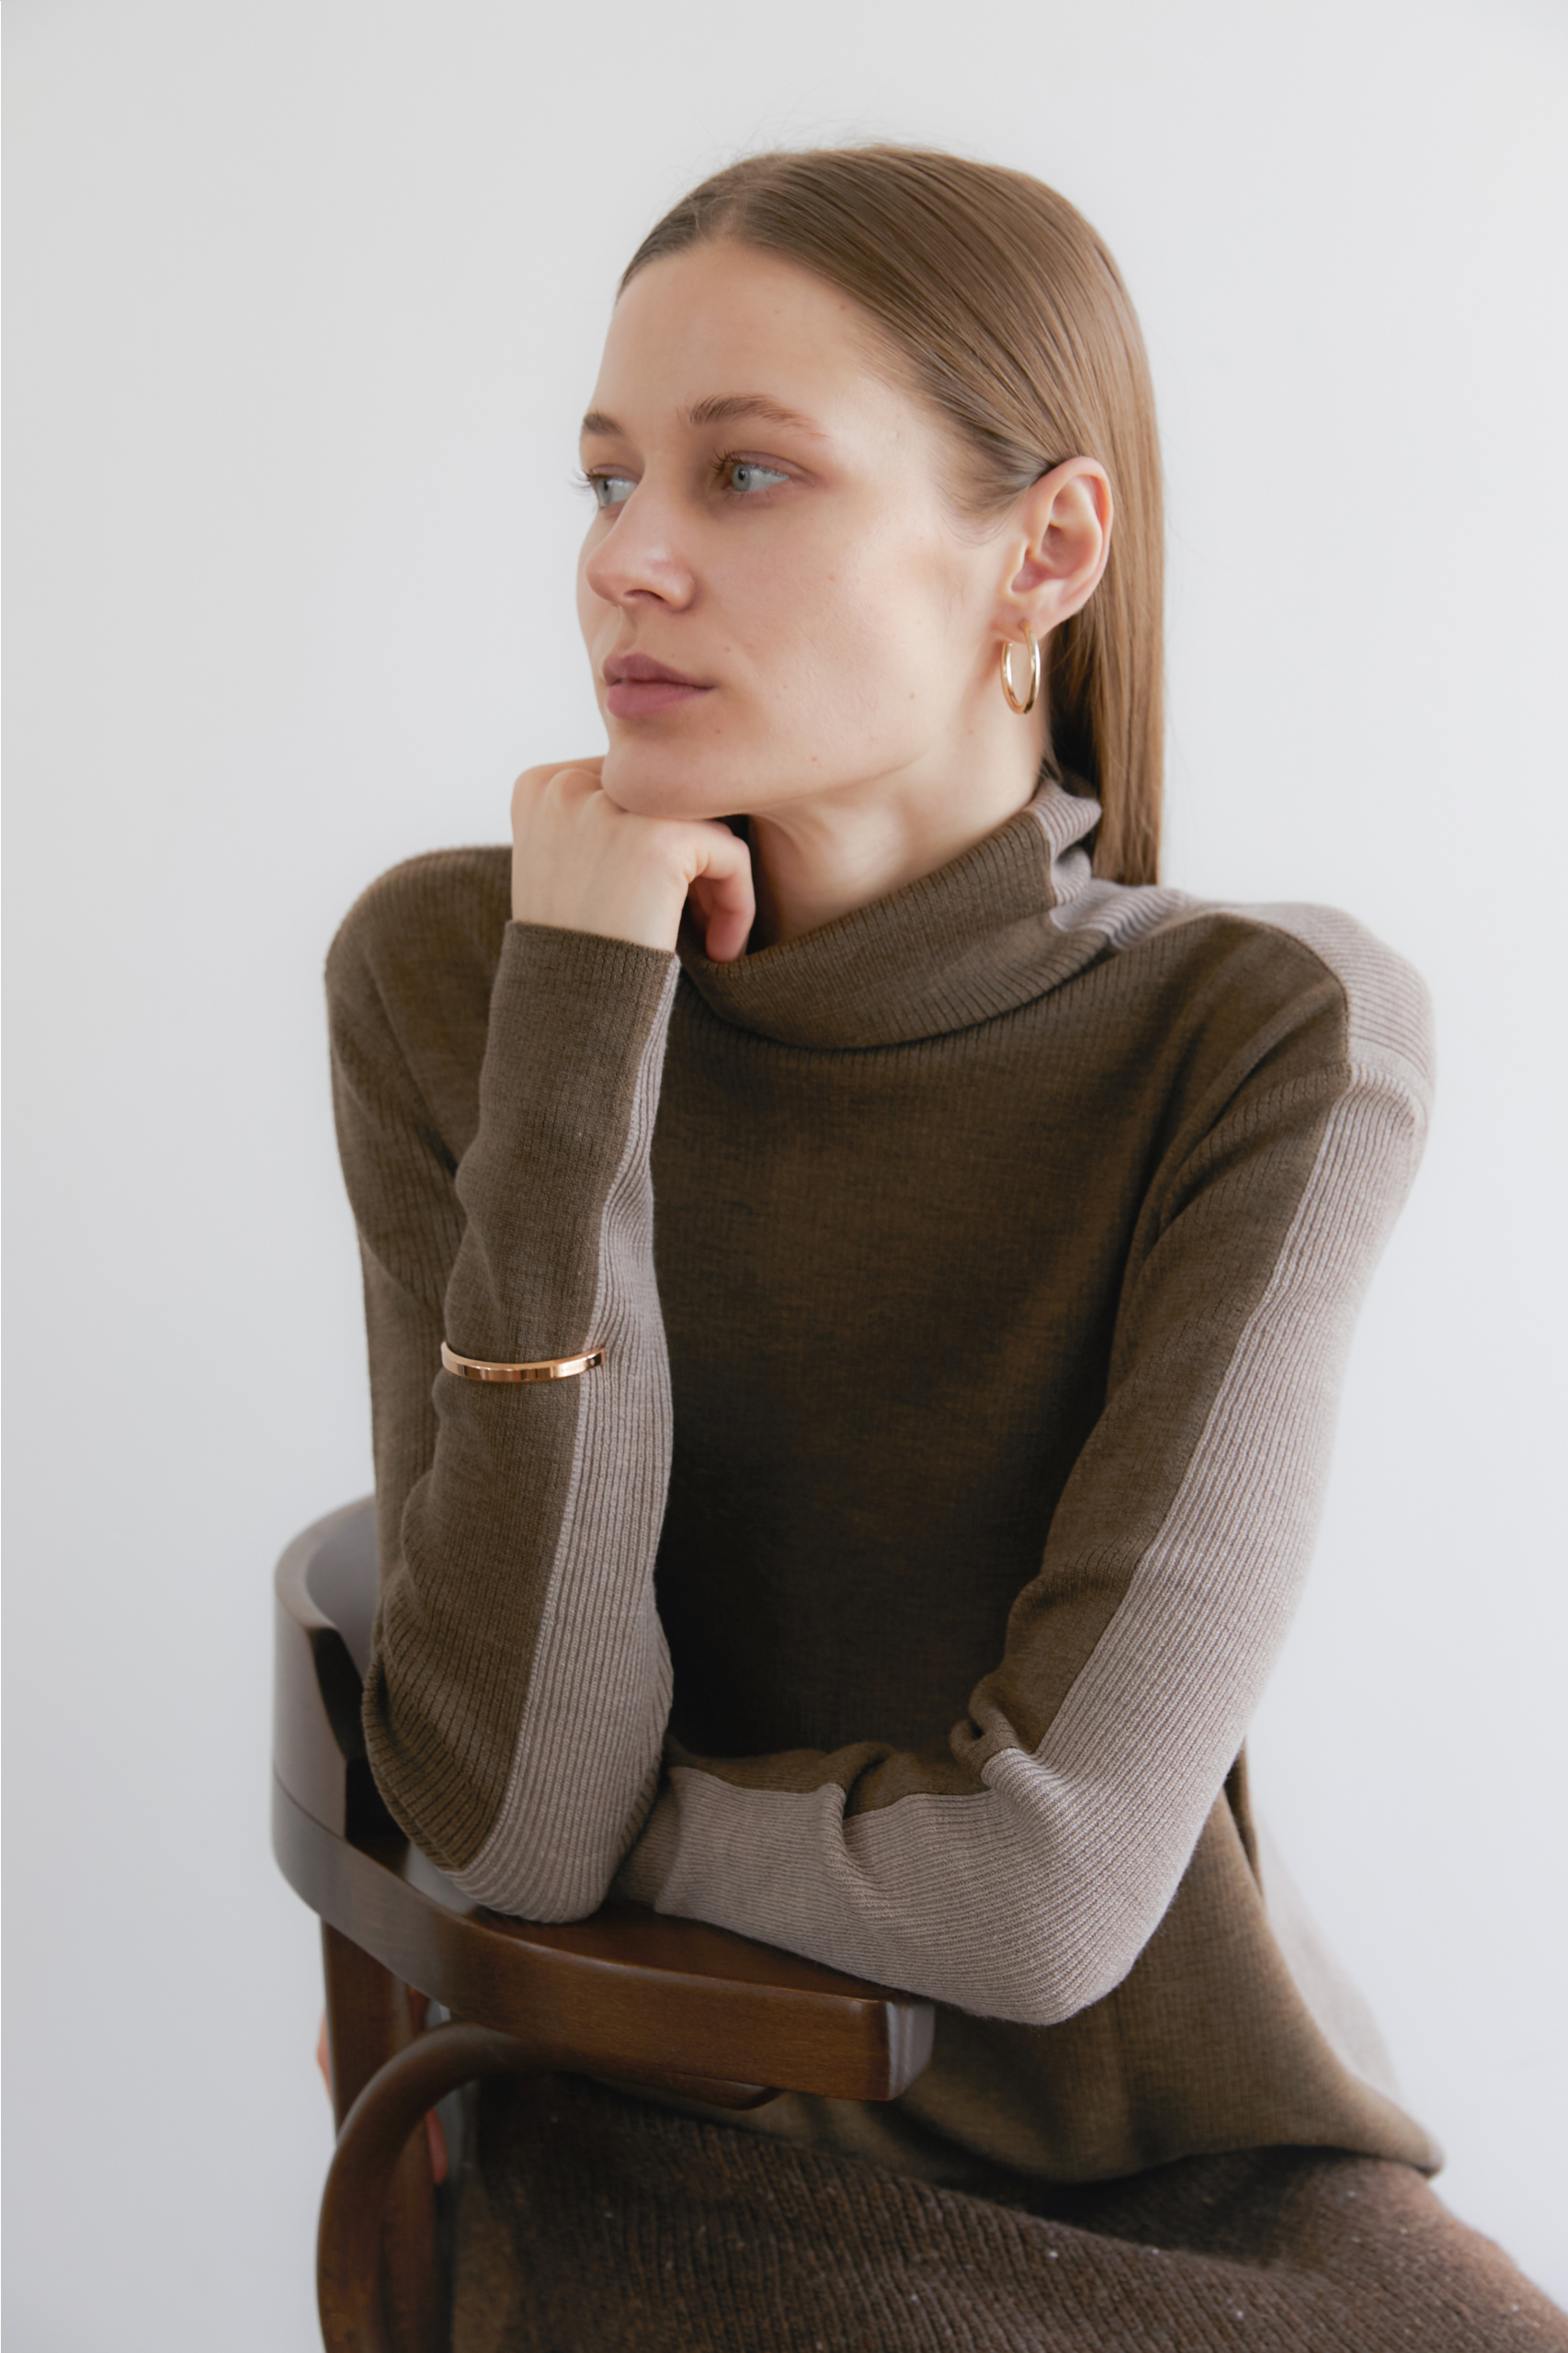 [NAMED Collection - 로로피아나] 프리미엄 이탈리안 high quality 울100% 터틀넥 Premium Italian high quality Wool 100% Ribbed soft-touch color block turtleneck - Ash Brown